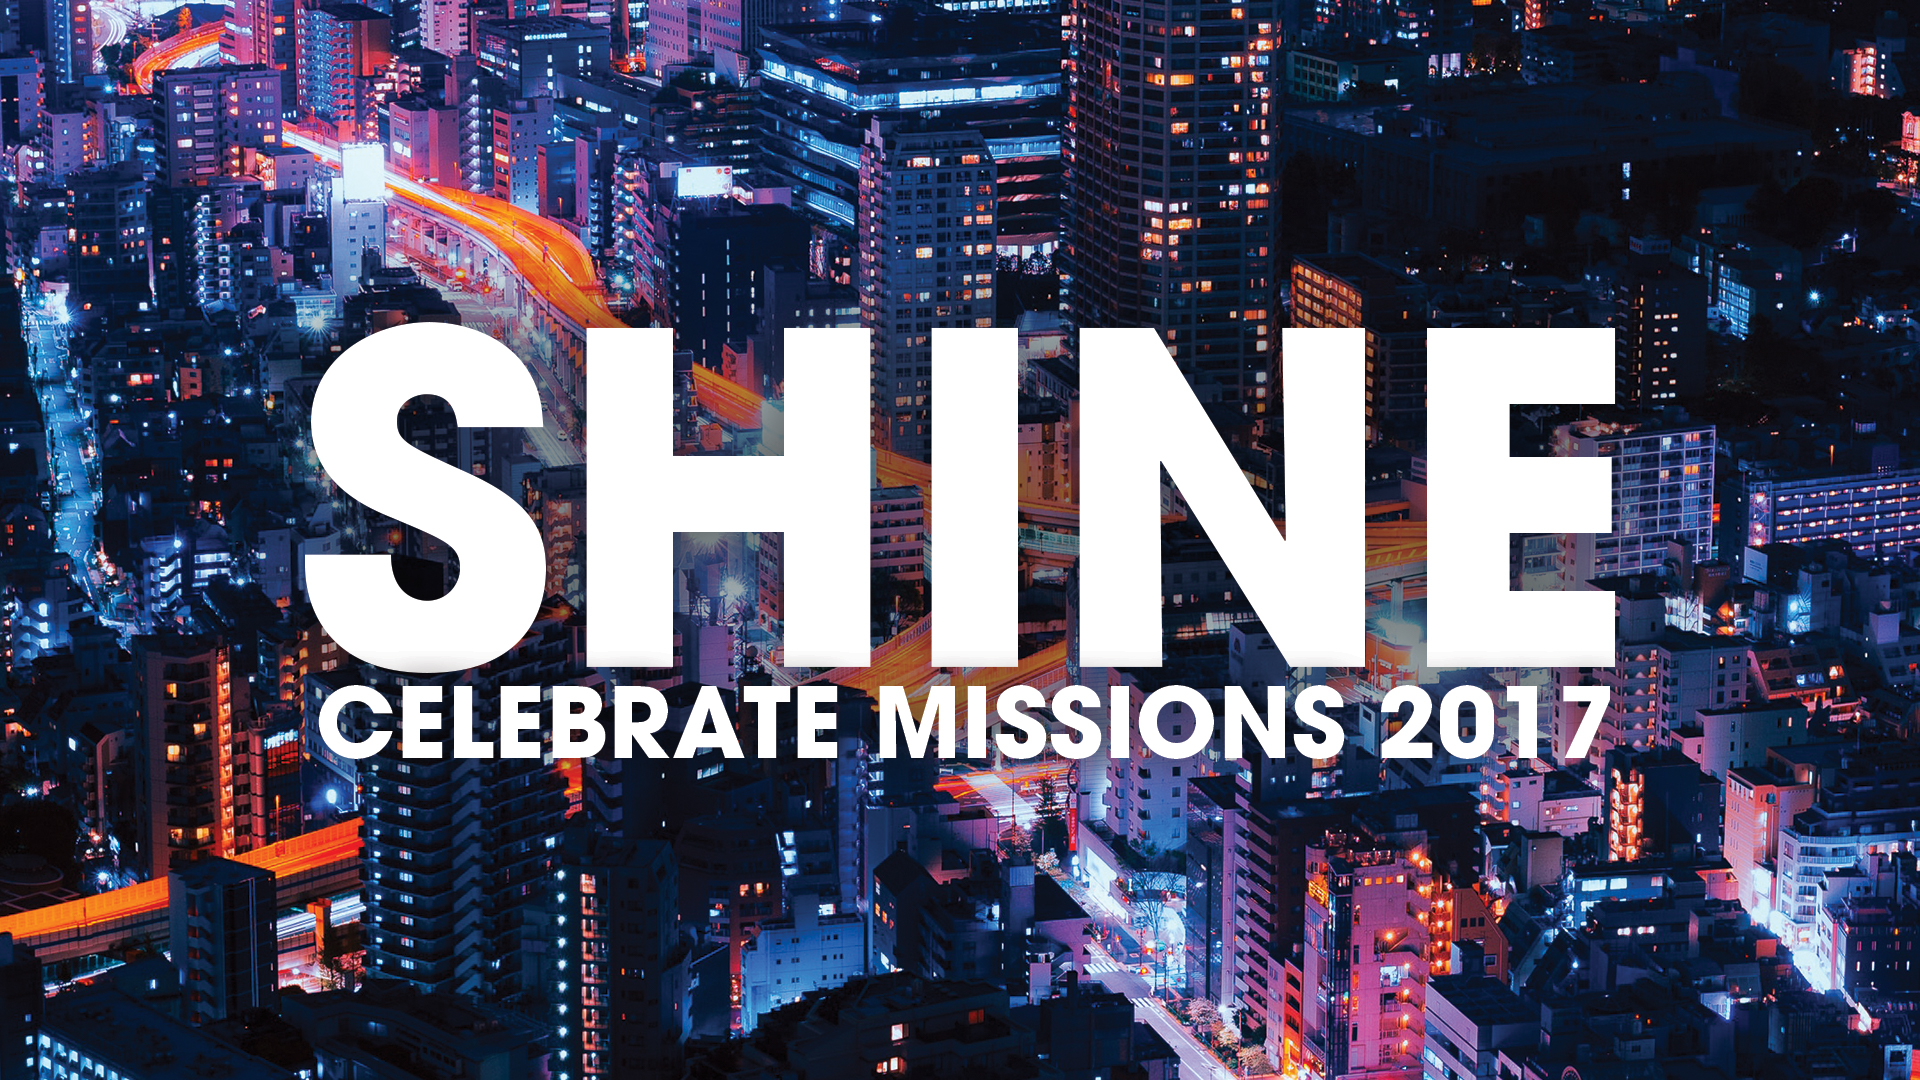 Celebrate missions app wide 1920x1080